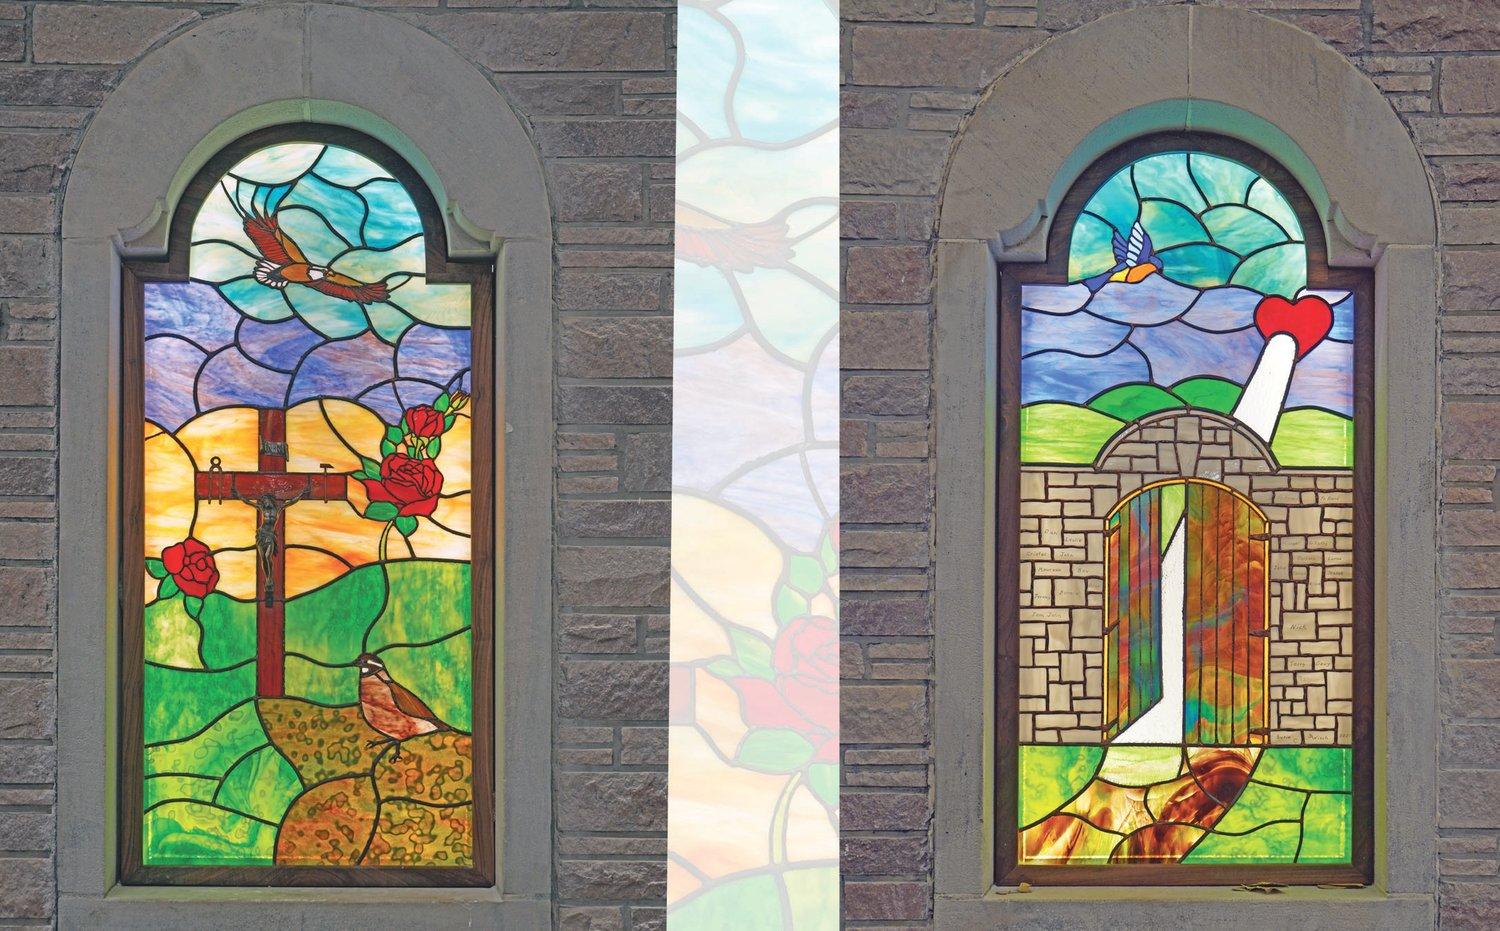 These two new art-glass windows were created by Jim Wisch for the chapel of the nearly completed Catholic Charities of Central and Northern Missouri (CCCNMO) headquarters in Jefferson City. The first represents the building's past use as a high school seminary chapel and gym, as well as CCCNMO's first 10 years of existence. The second points to the building's future of paving and illuminating the path to God through the gateway of concrete acts of charity and mercy.